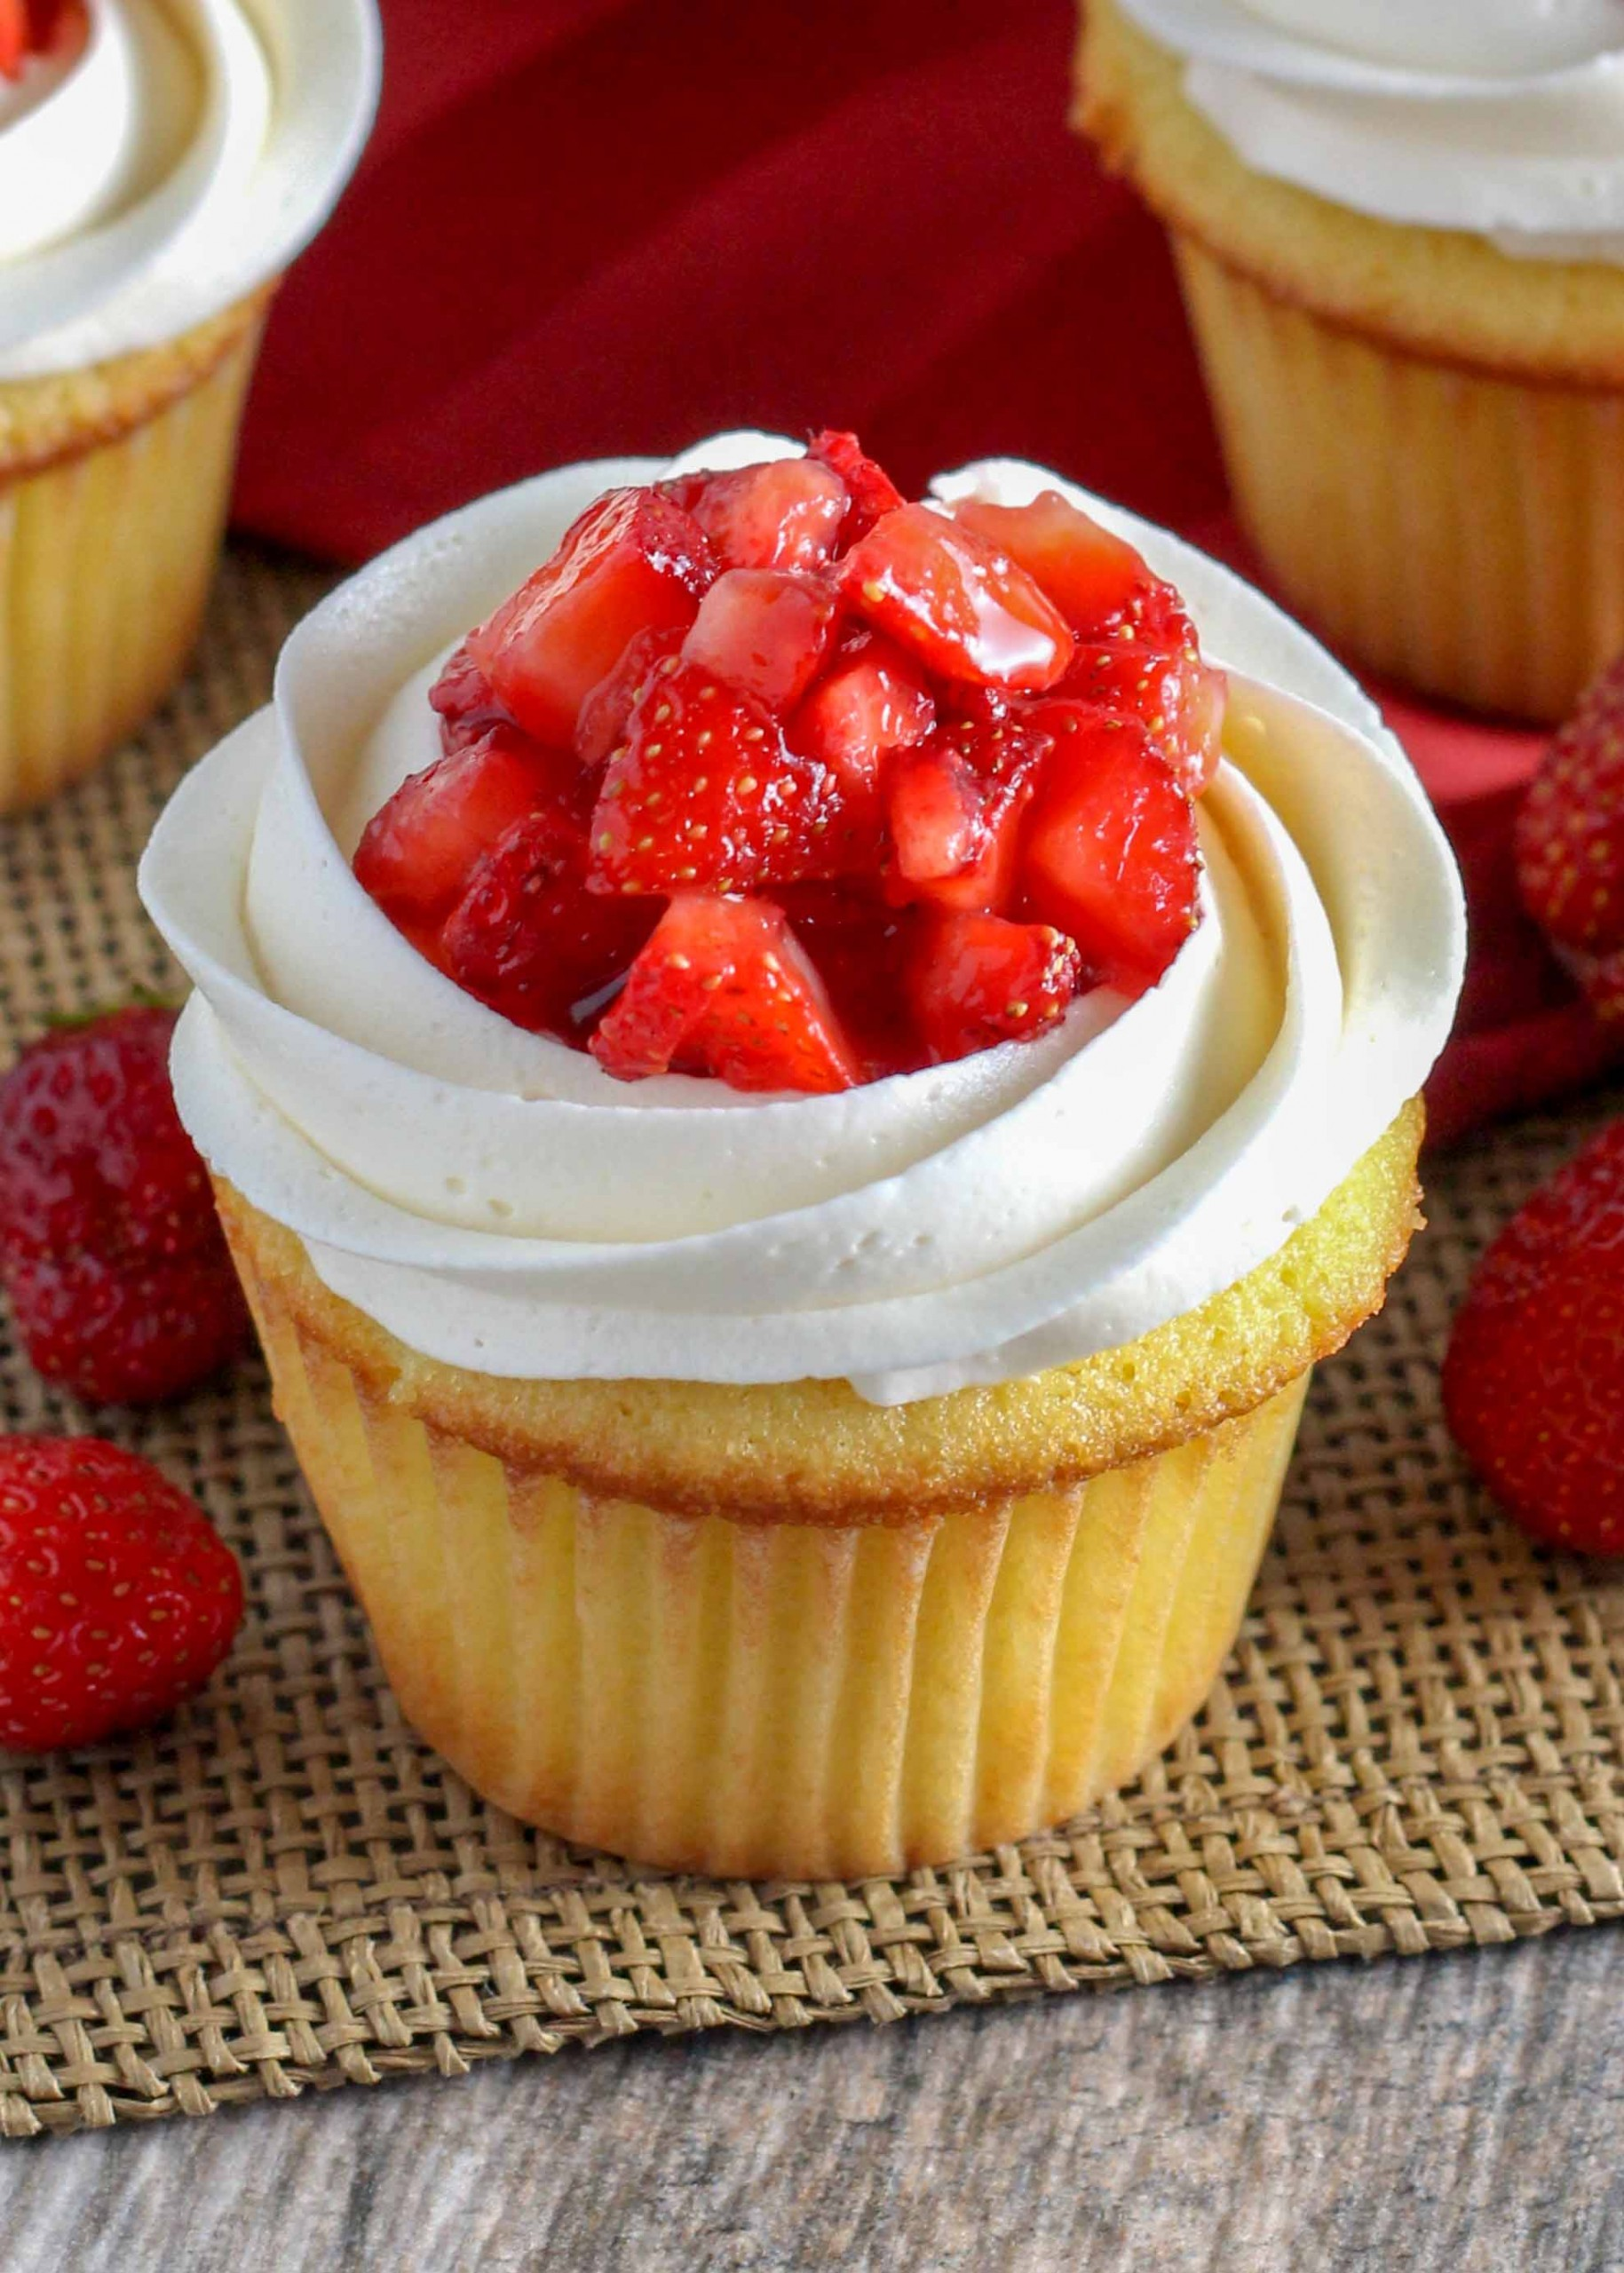 Strawberry Shortcake Cupcakes are a everything you love about the classic dessert in a handheld treat!